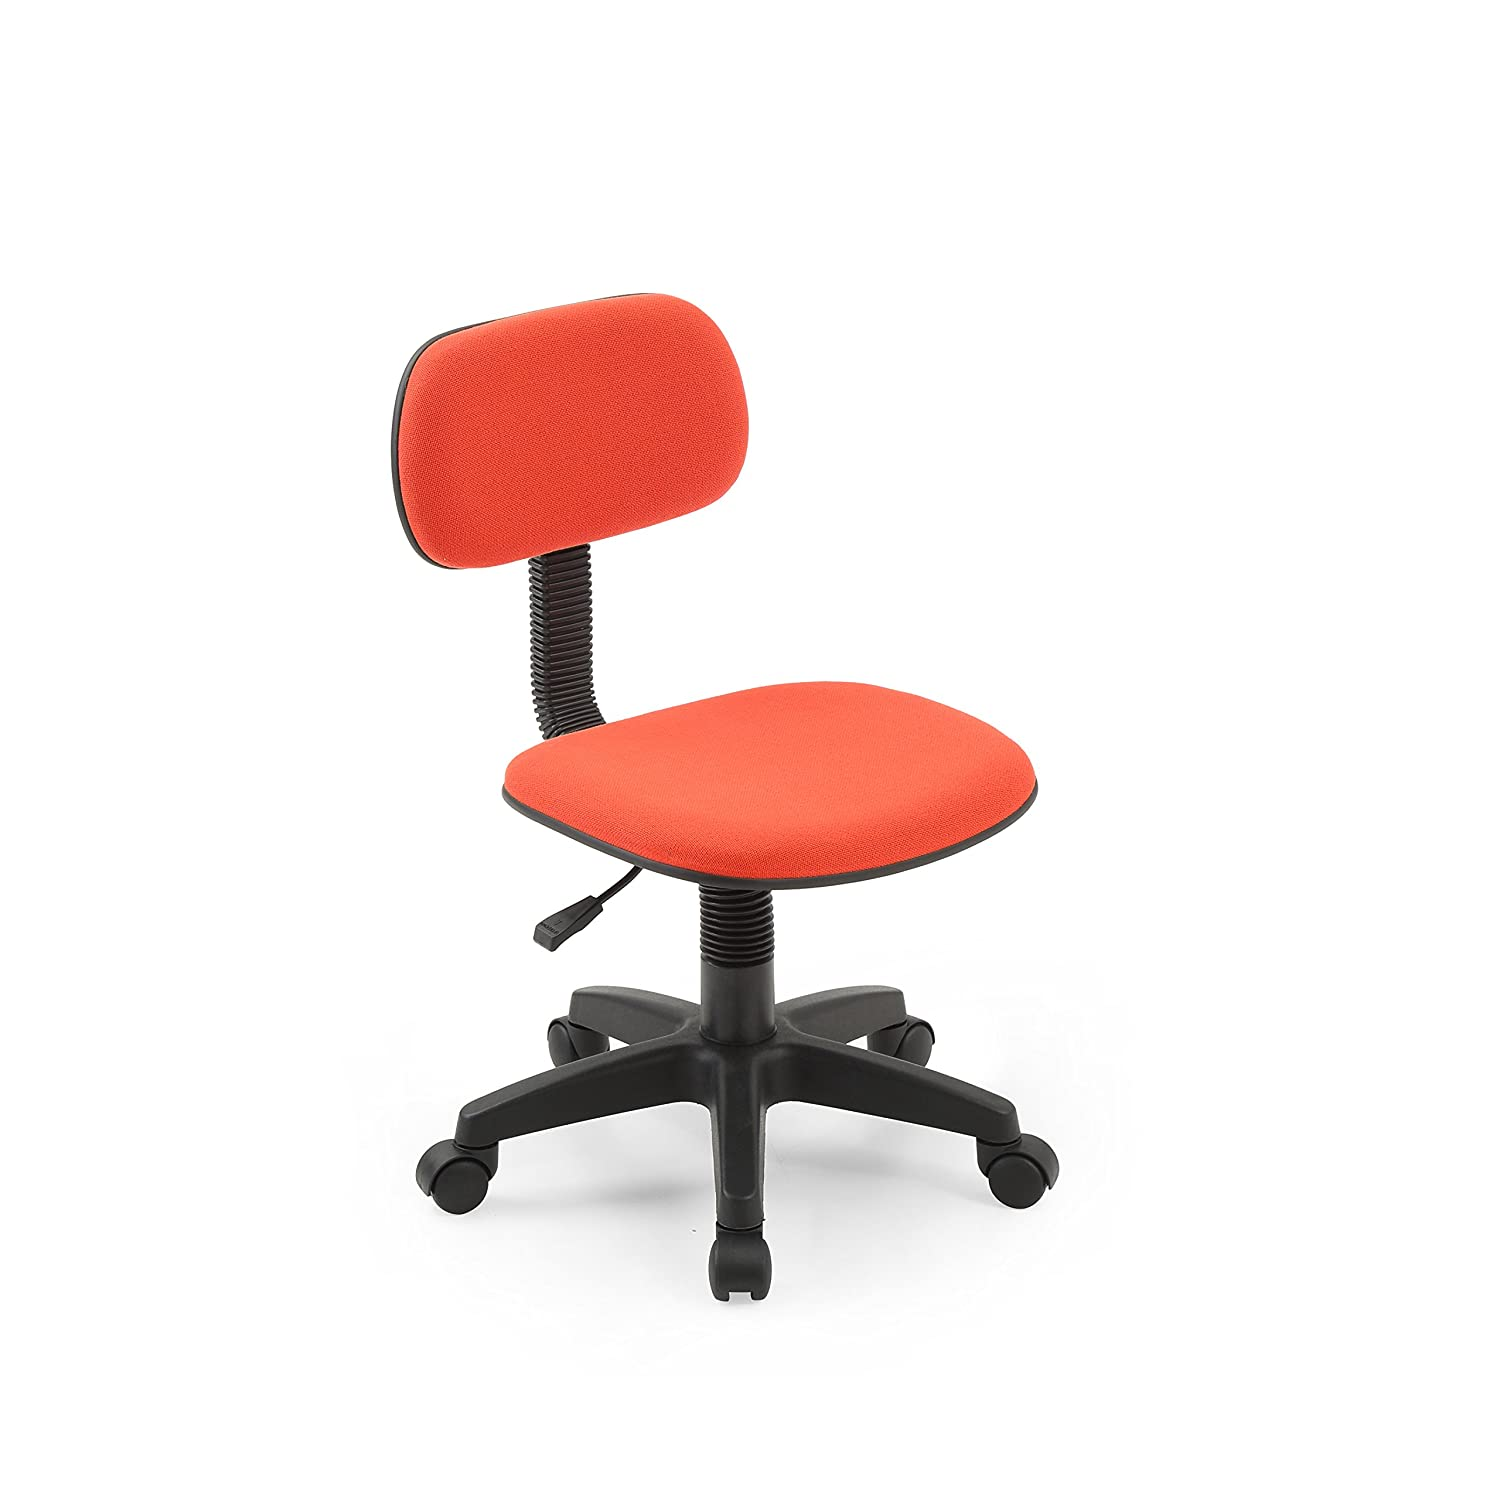 Image result for Hodedah Armless, Low-Back, Adjustable Height, Swiveling Task Chair with Padded Back and Seat in Red